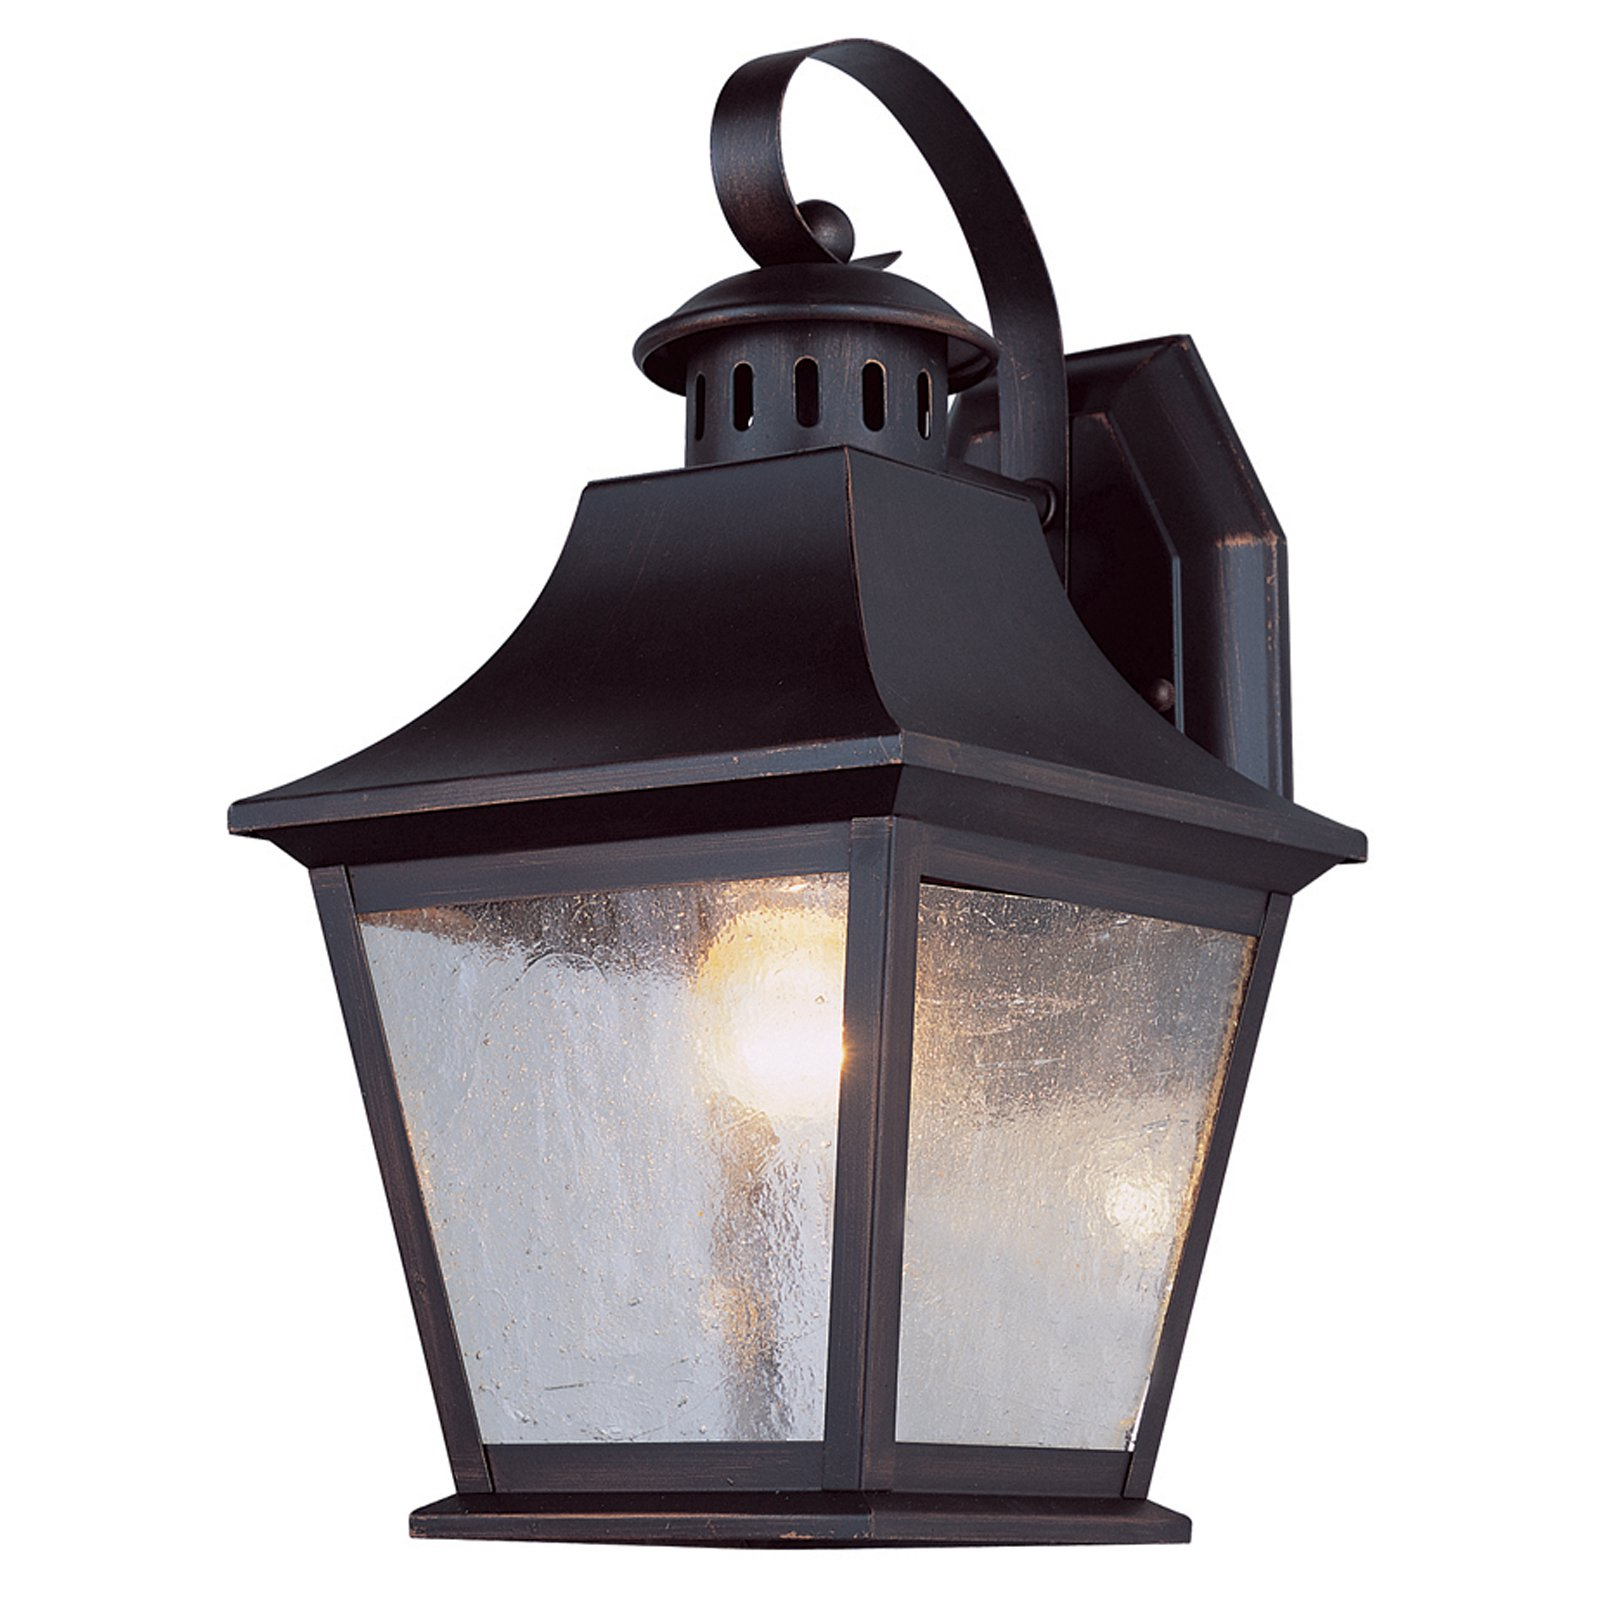 Trans Globe EE Manchester PL-4871 Outdoor Coach Lantern - Rubbed Oil Bronze - 11H in.